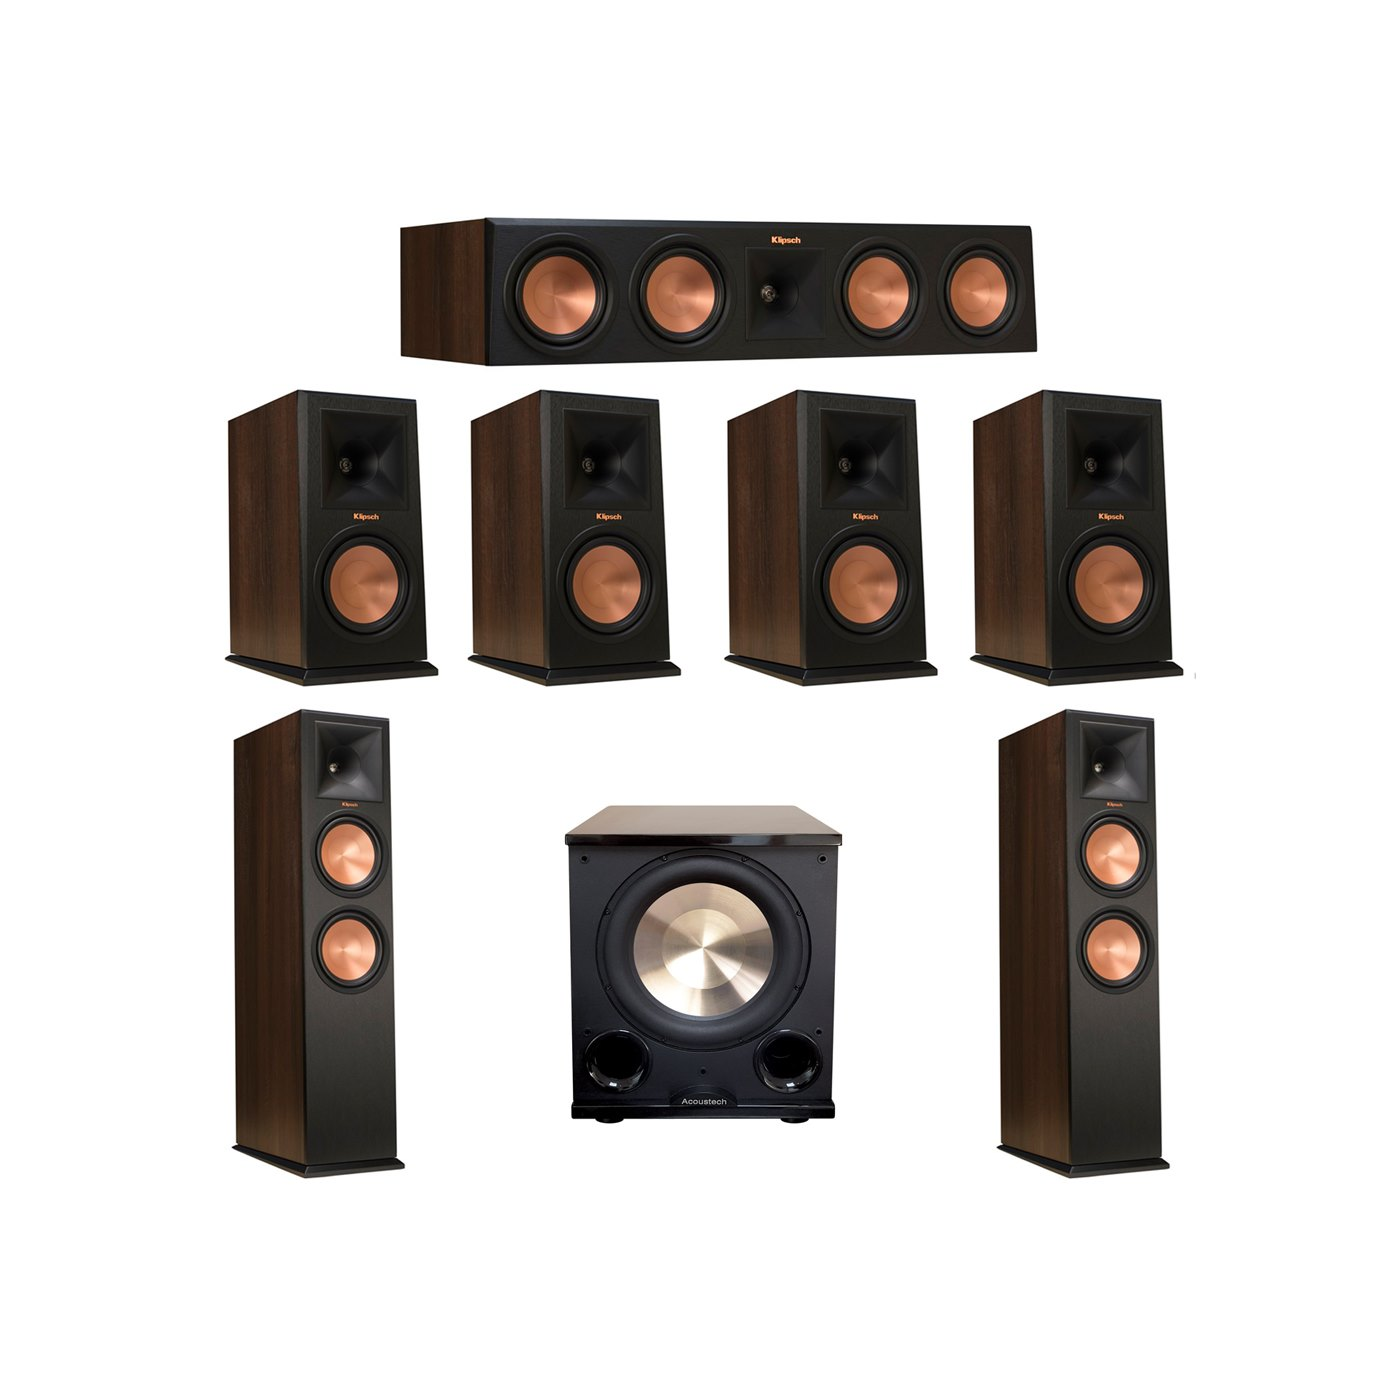 Klipsch 7.1 Walnut System with 2 RP-280F Tower Speakers, 1 RP-450C Center Speaker, 4 Klipsch RP-160M Bookshelf Speakers, 1 BIC/Acoustech Platinum Series PL-200 II Subwoofer